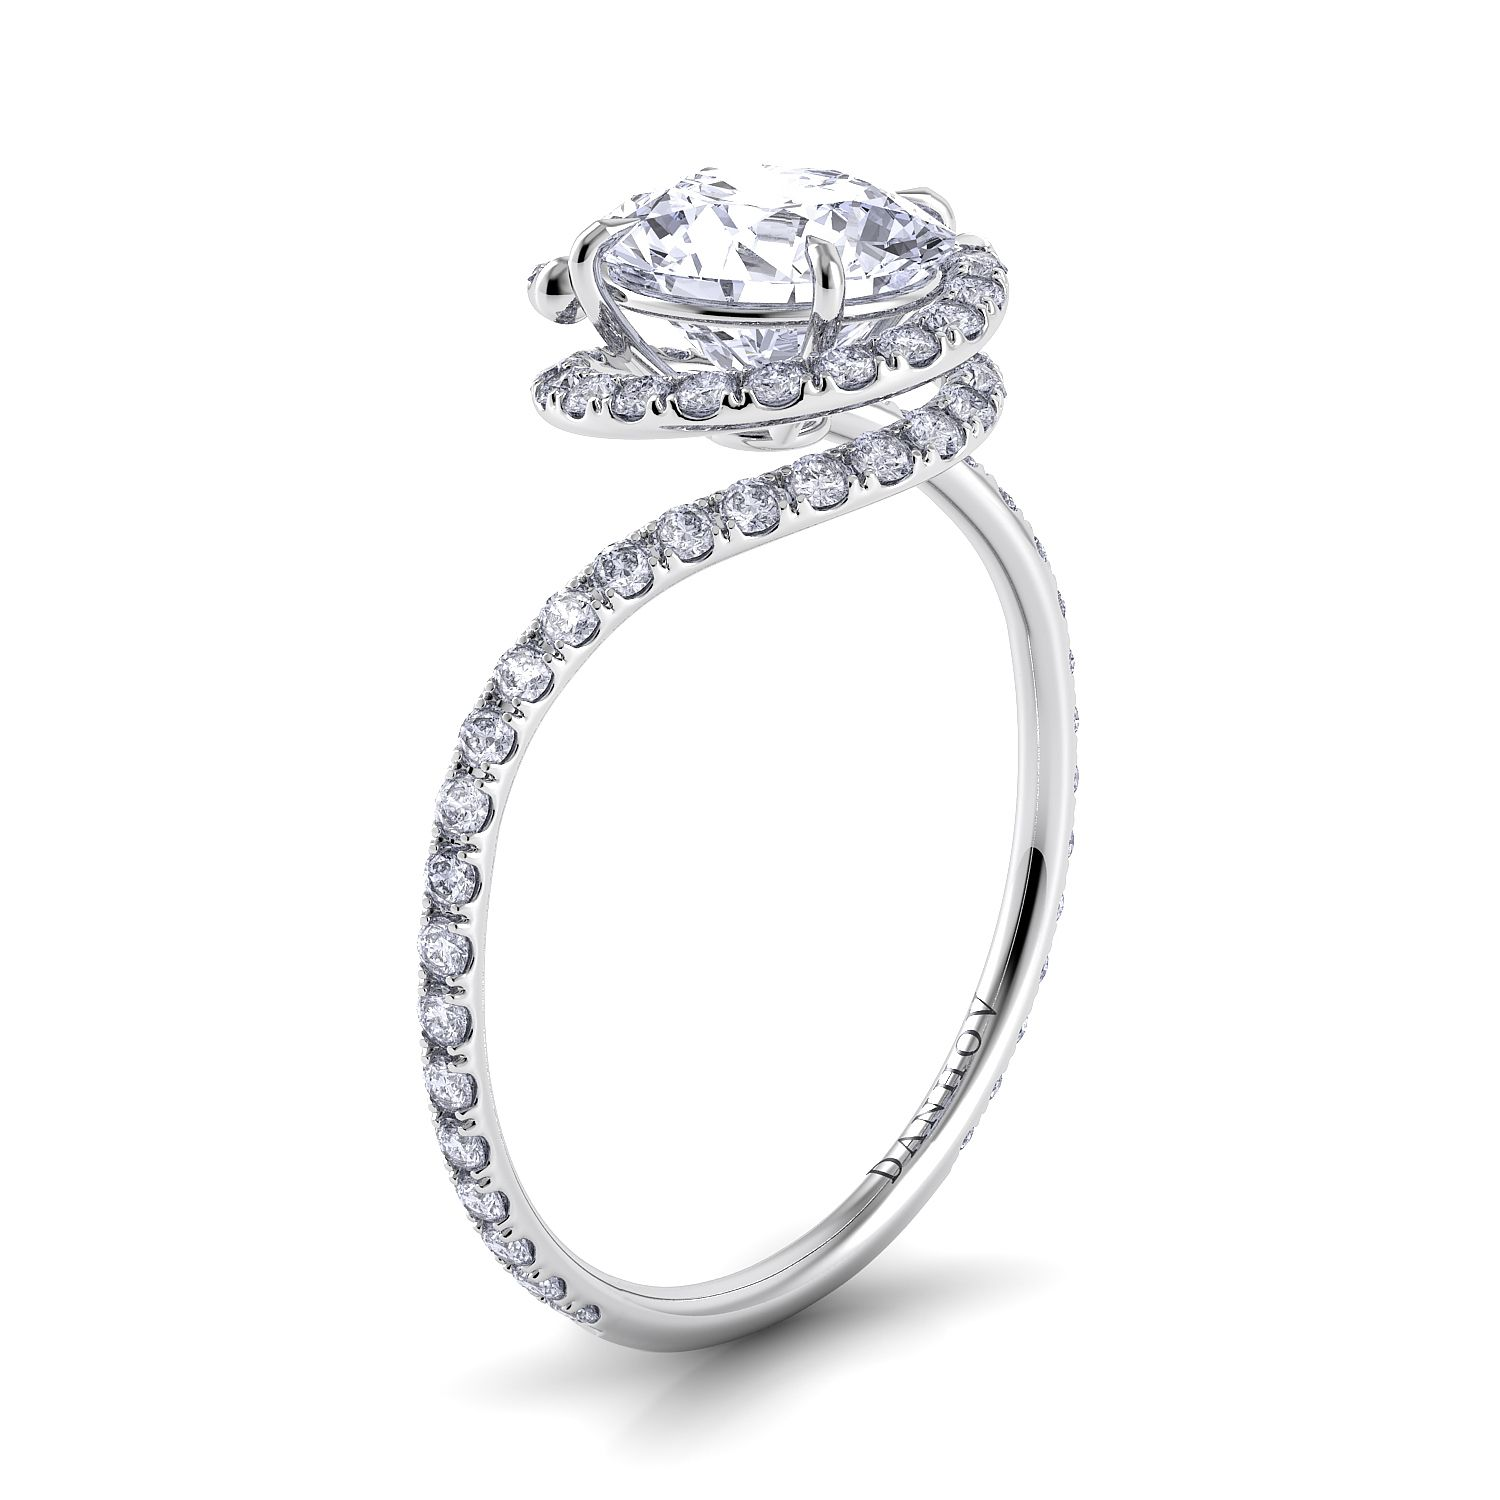 Looks like a good engagement ring whenever that happens for me